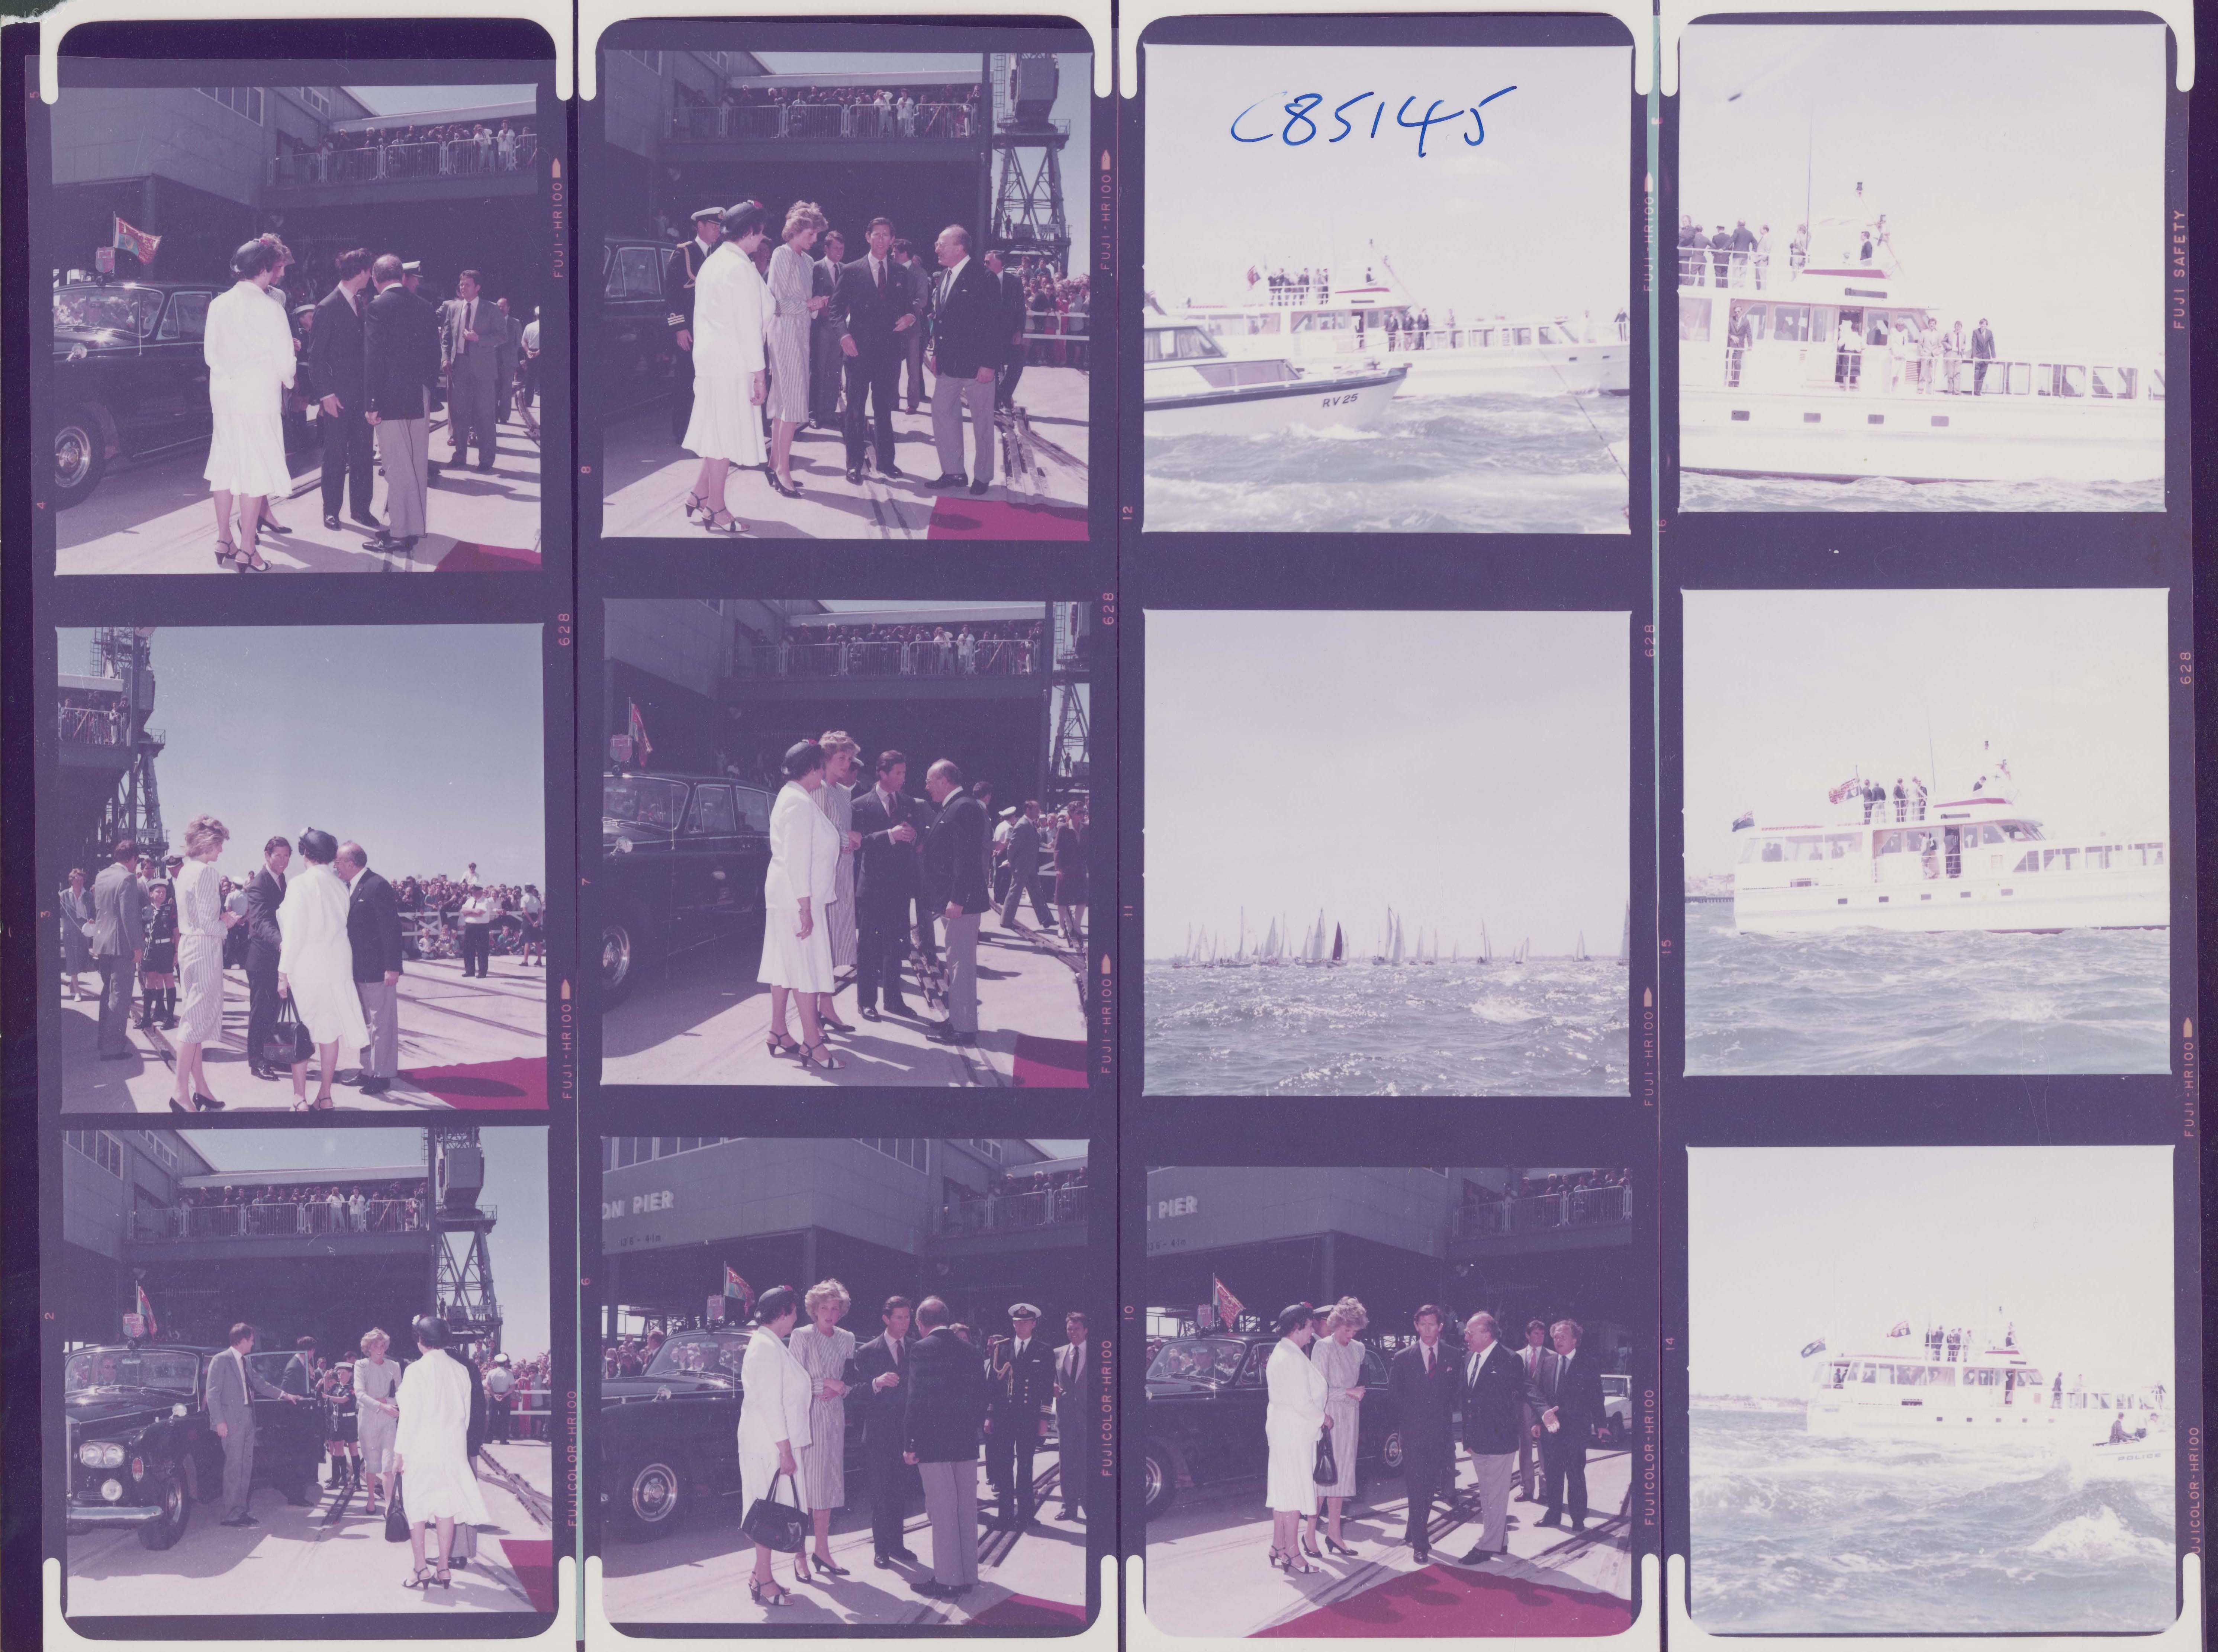 negatives of diana and charles on the docks and ships on the water